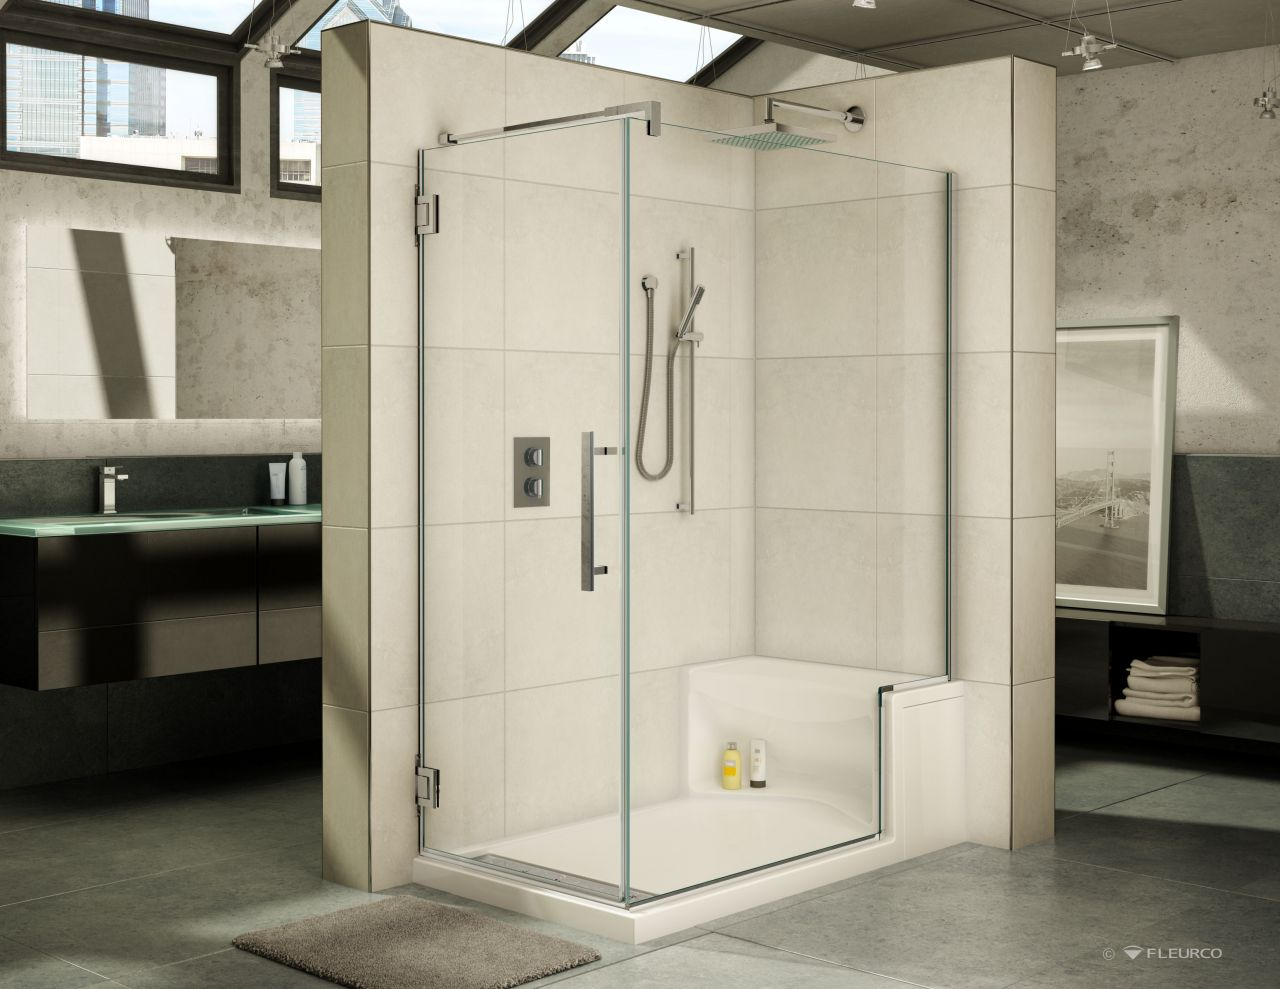 60 X 36 Fleurco Acrylic Shower Base With Bench Seat And